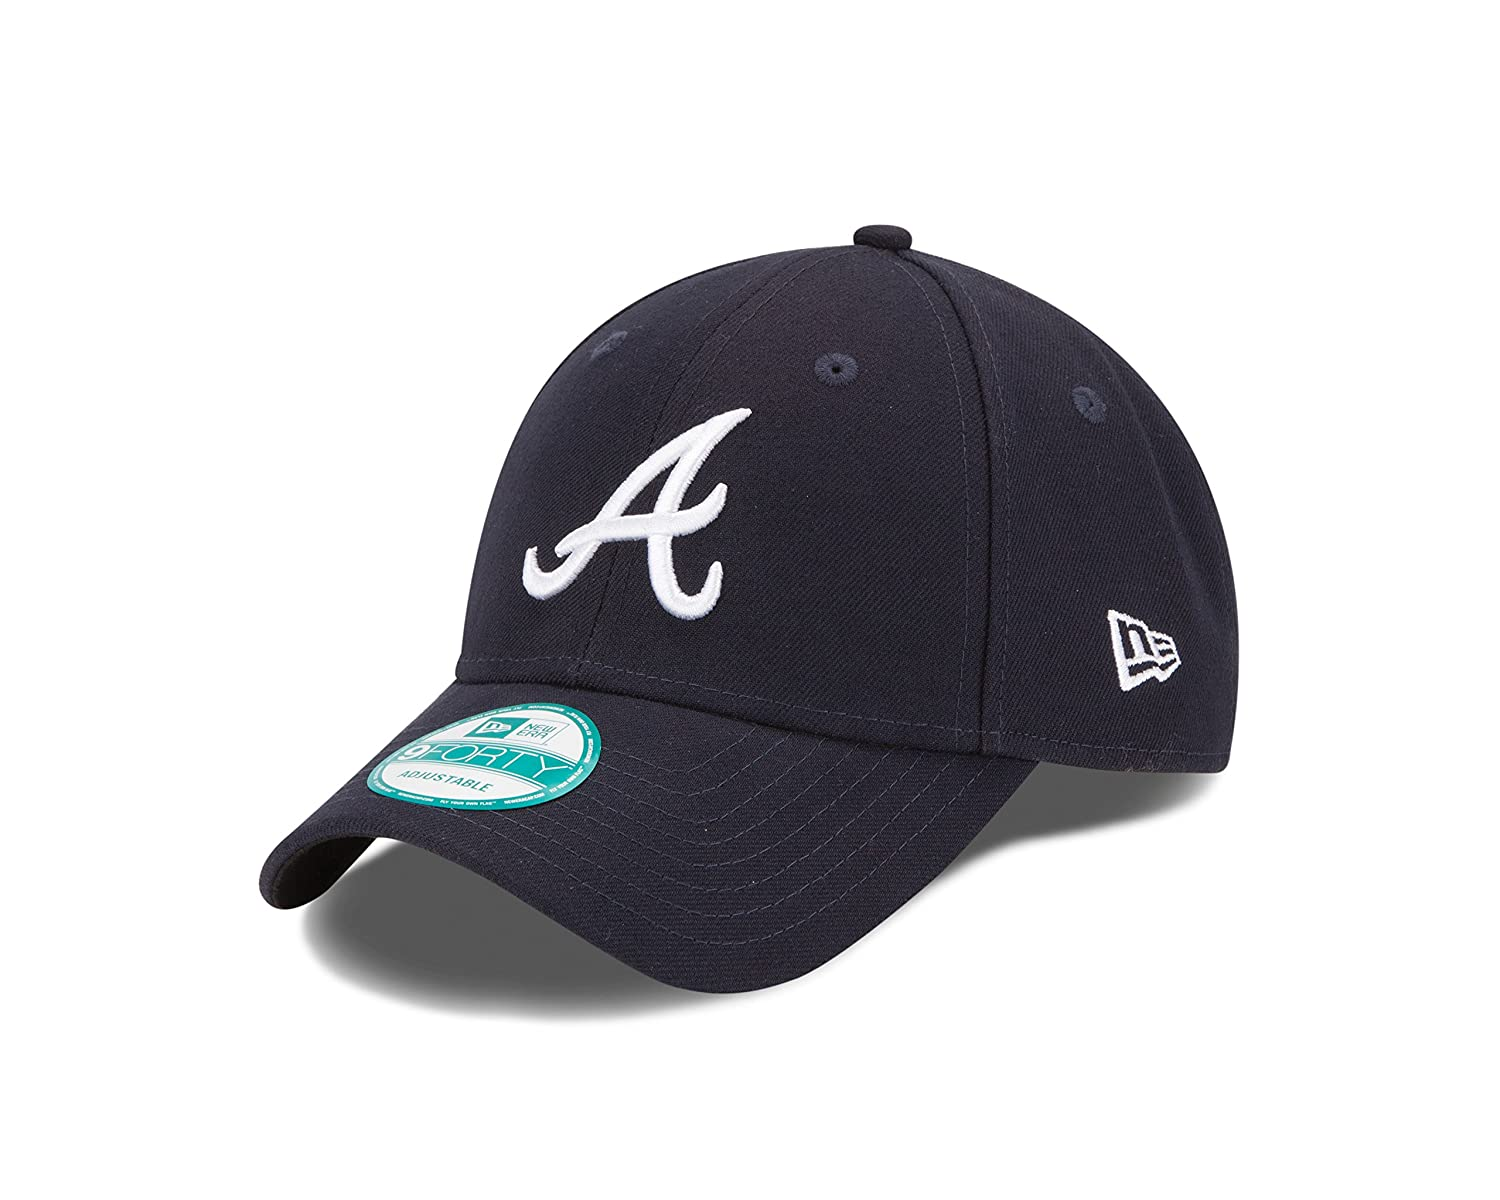 New Era MLB Road The League 9FORTY Adjustable Cap